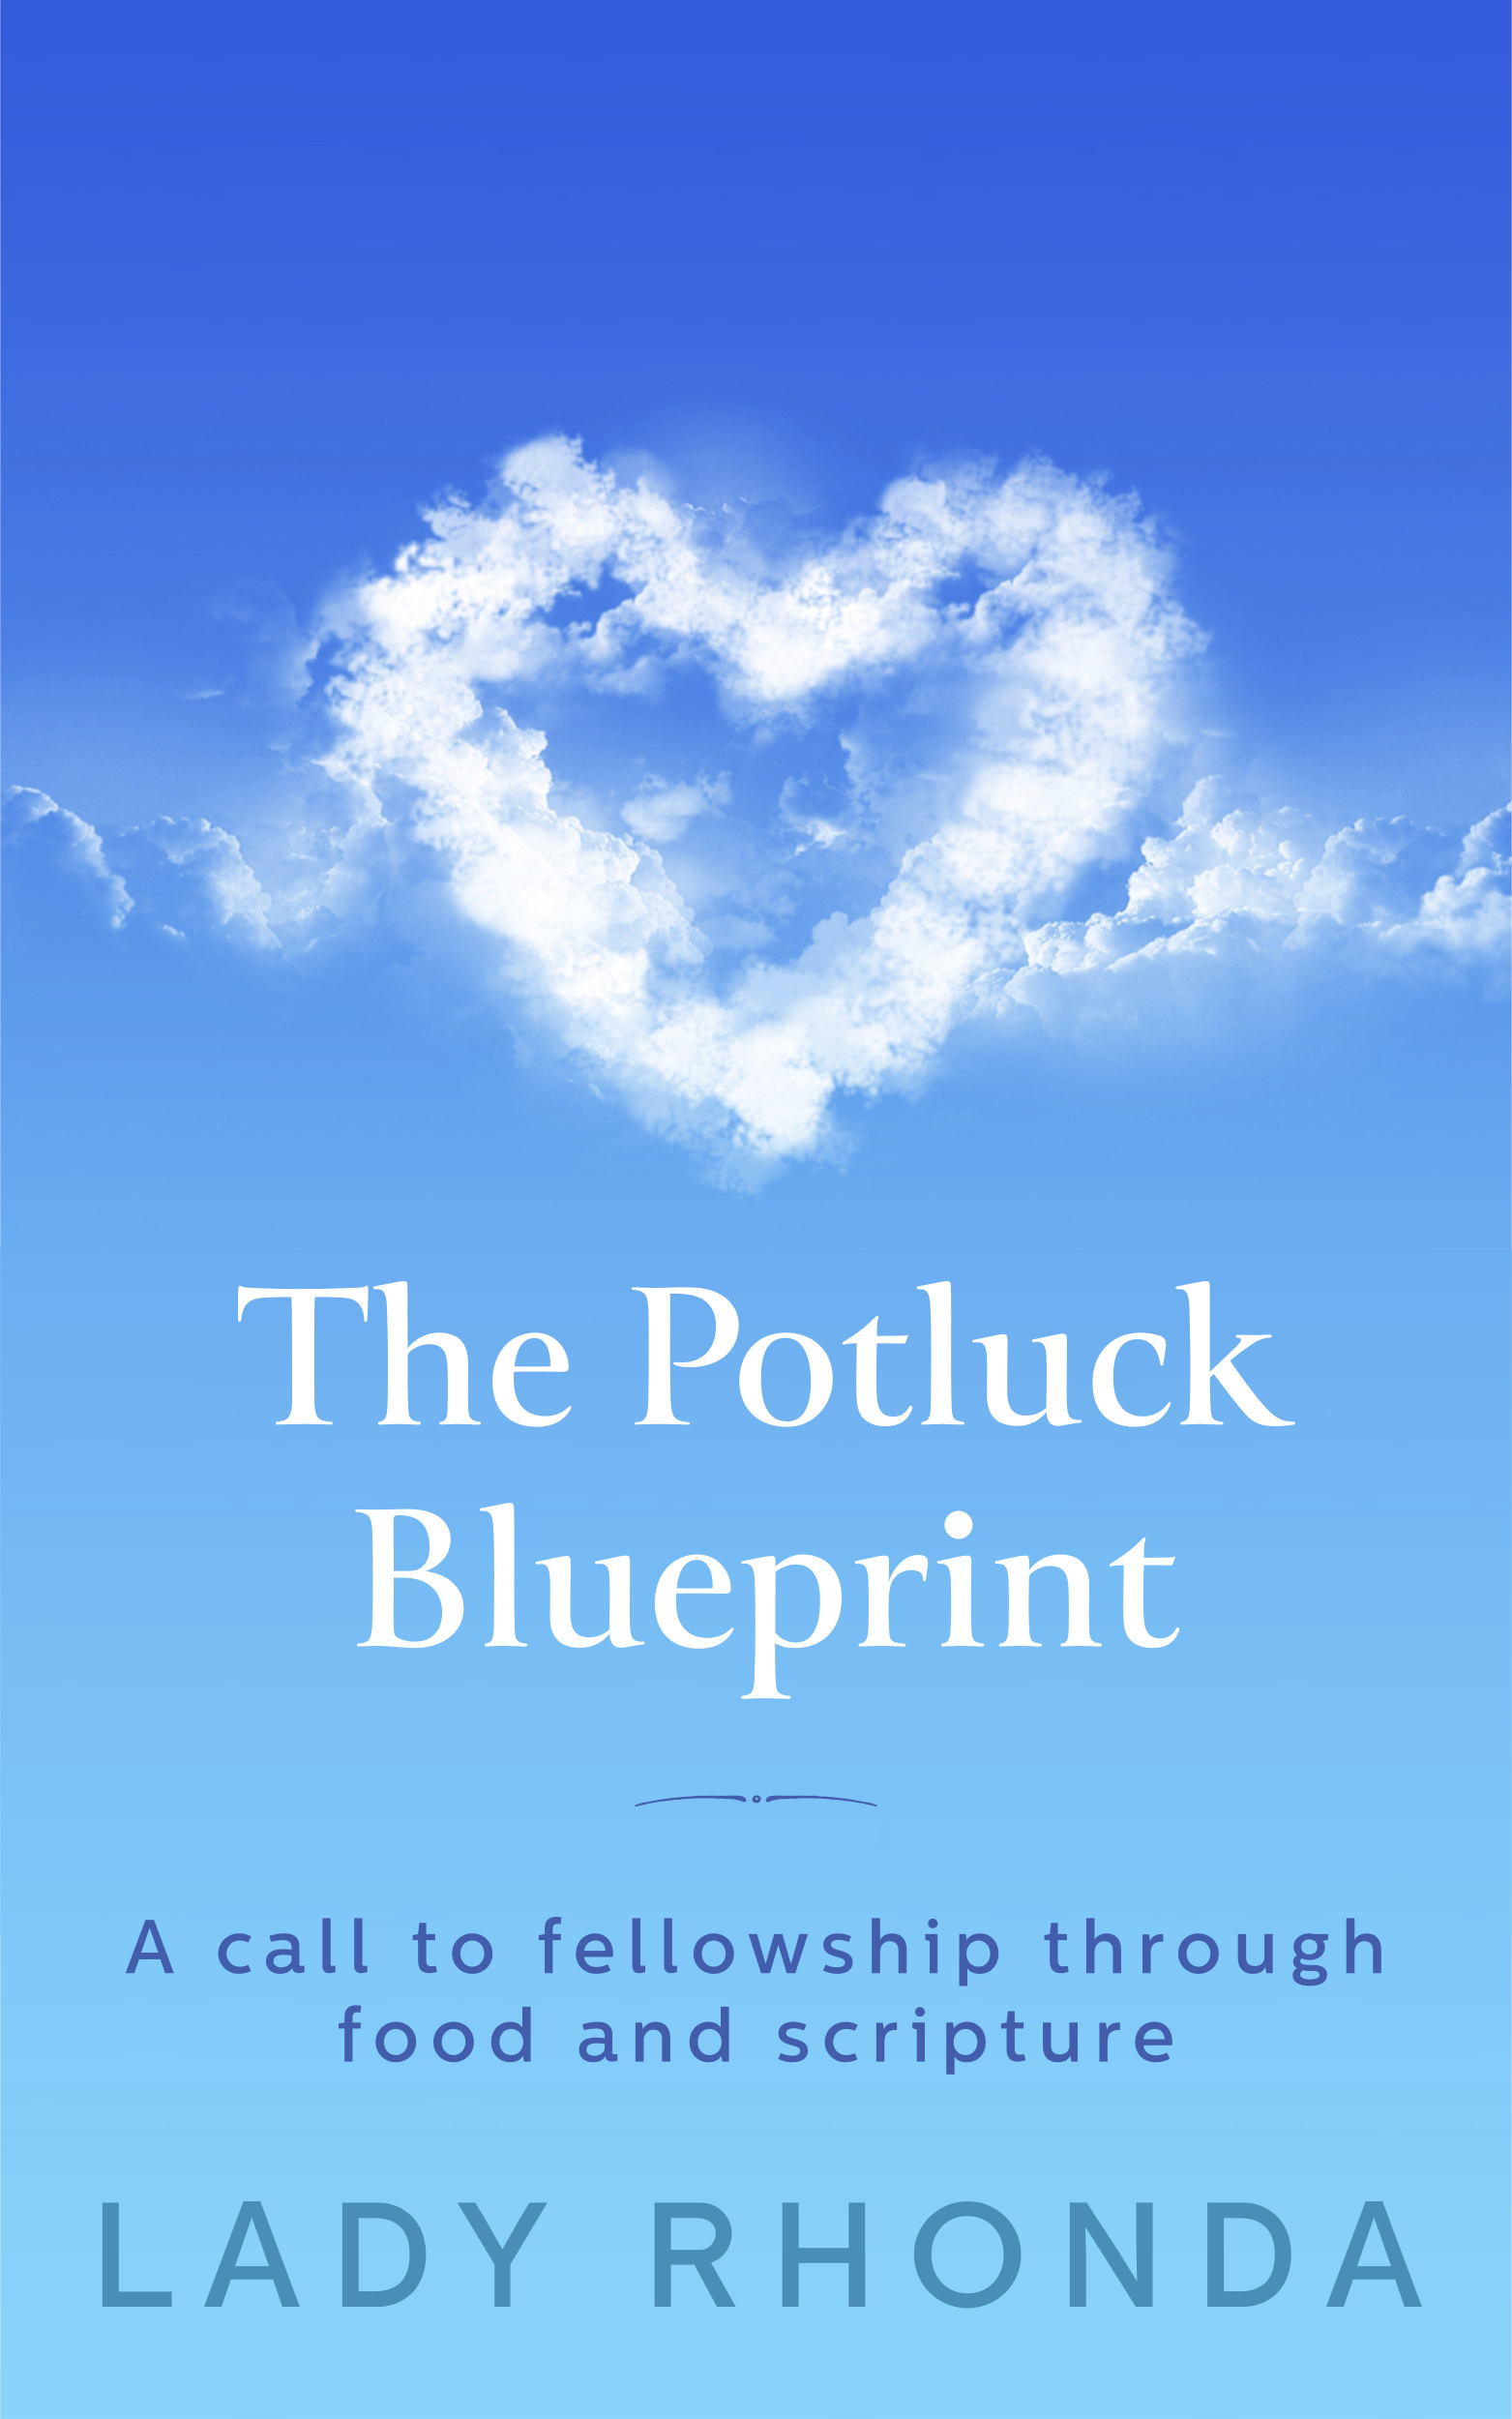 Widowed high ranking military officer and mother of triplets widowed high ranking military officer and mother of triplets publishes book on fellowship through food and scripture malvernweather Gallery